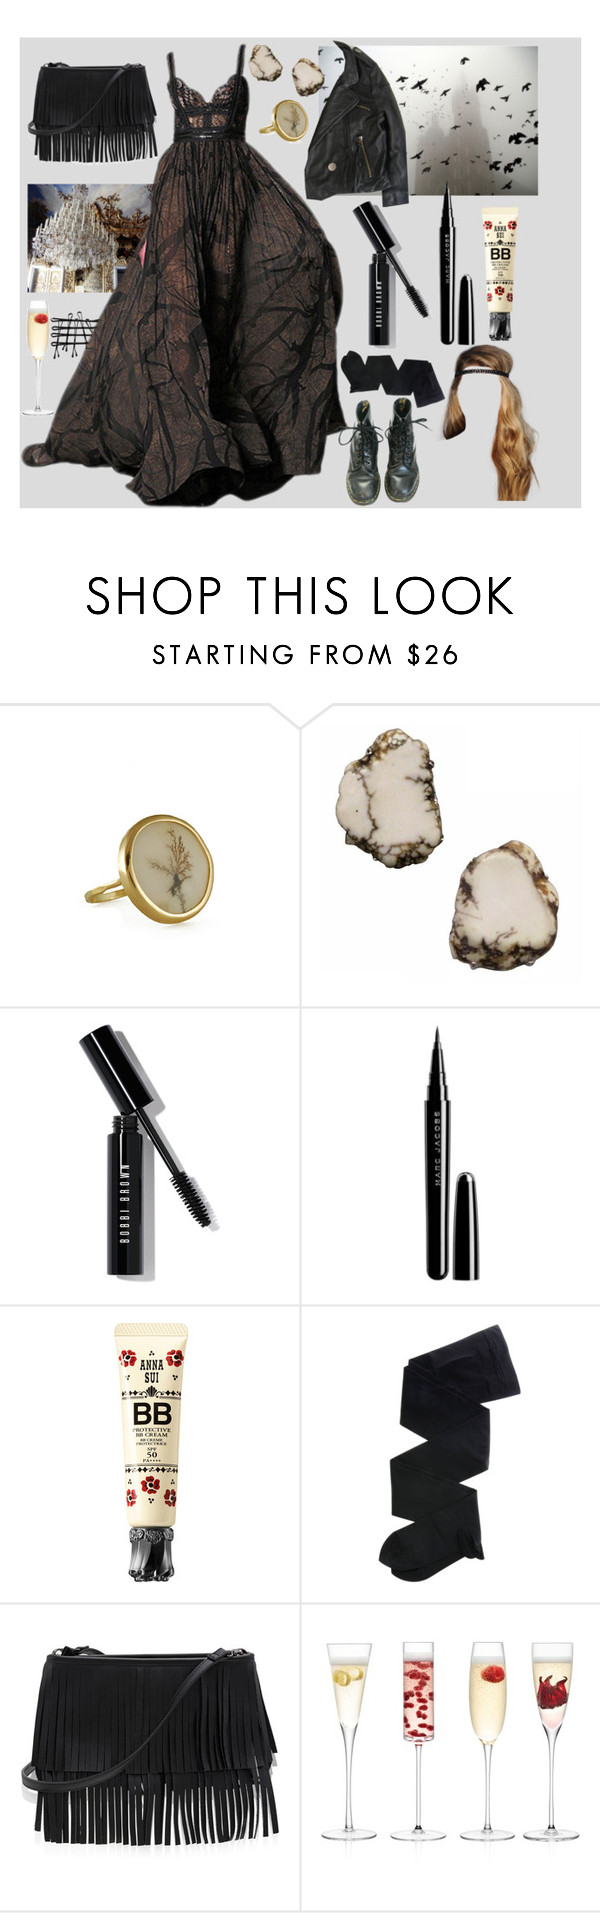 """Not what she seems at first glance"" by georginasmith-wastaken ❤ liked on Polyvore featuring Siman Tu, Bobbi Brown Cosmetics, Marc Jacobs, Anna Sui, Gerbe, White House Black Market and LSA International"